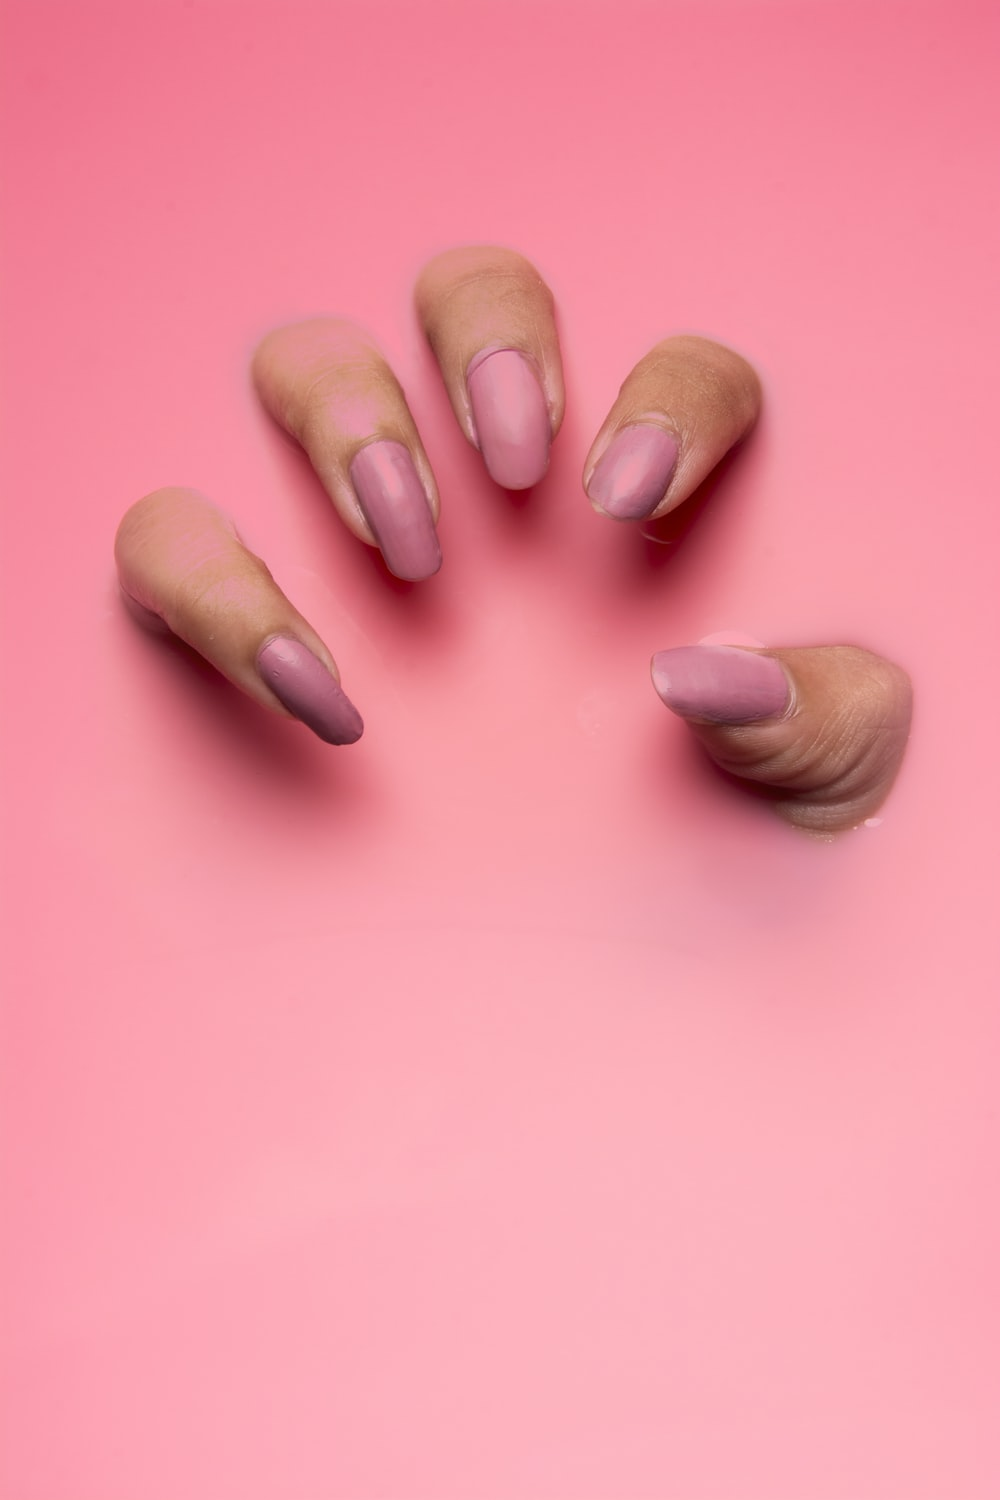 persons hand on pink surface